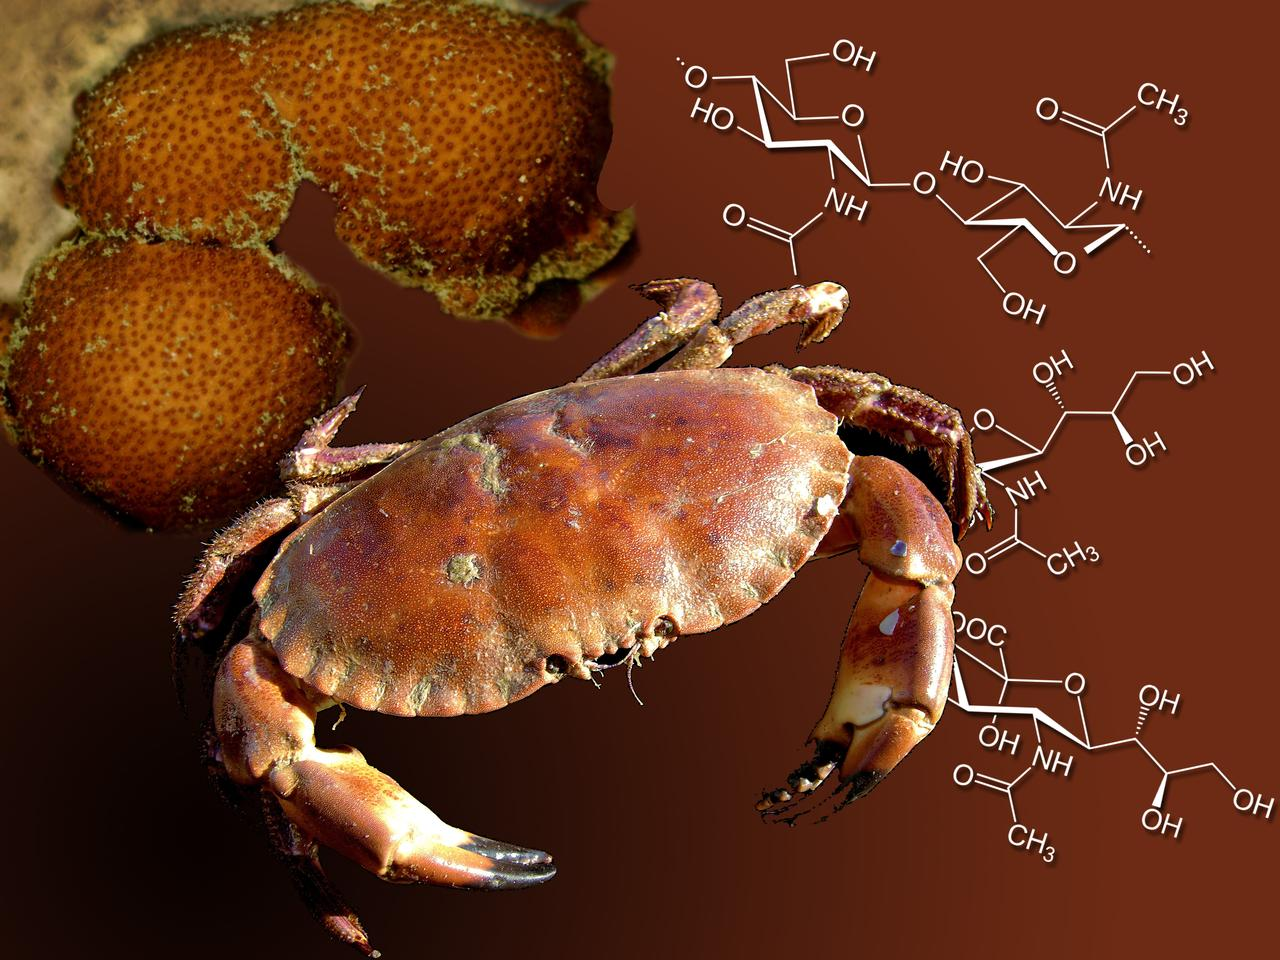 The chitin found in crab and lobster shells is being used in a process that could lead to much cheaper antiviral drugs